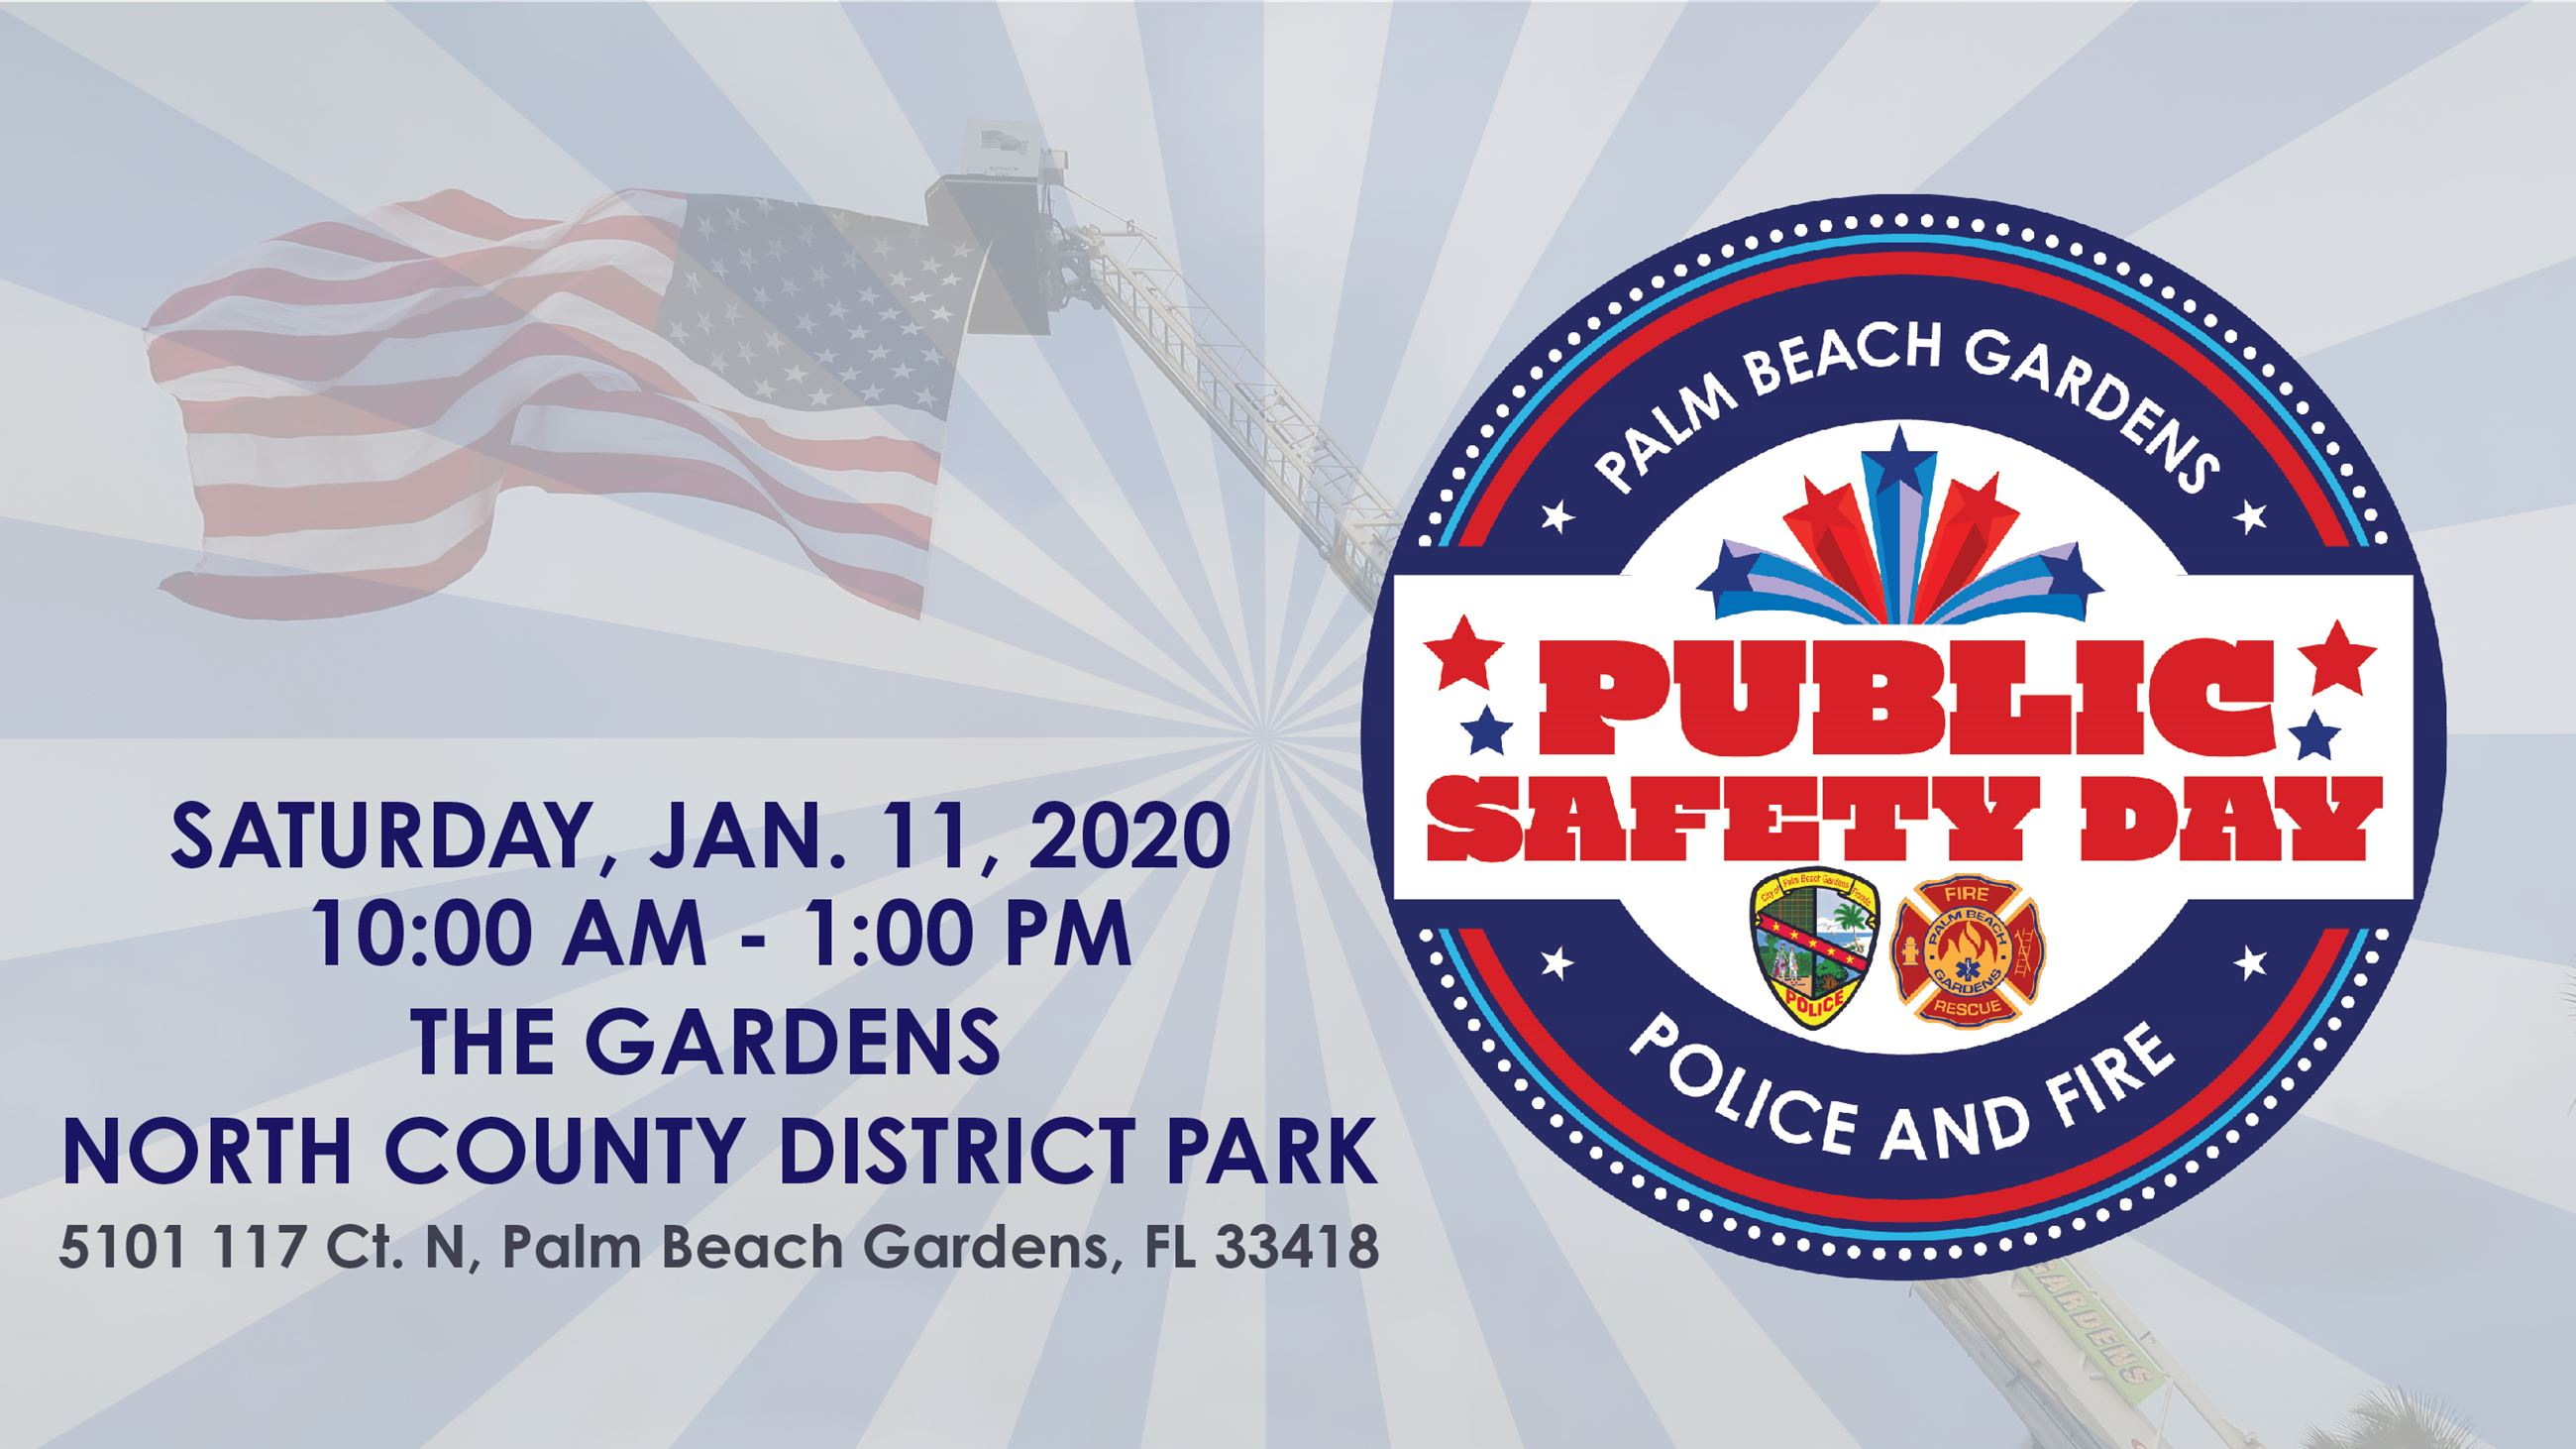 2020 Public Safety Day January 11 from 10 a.m. to 1 p.m. at The Gardens North County District Park.